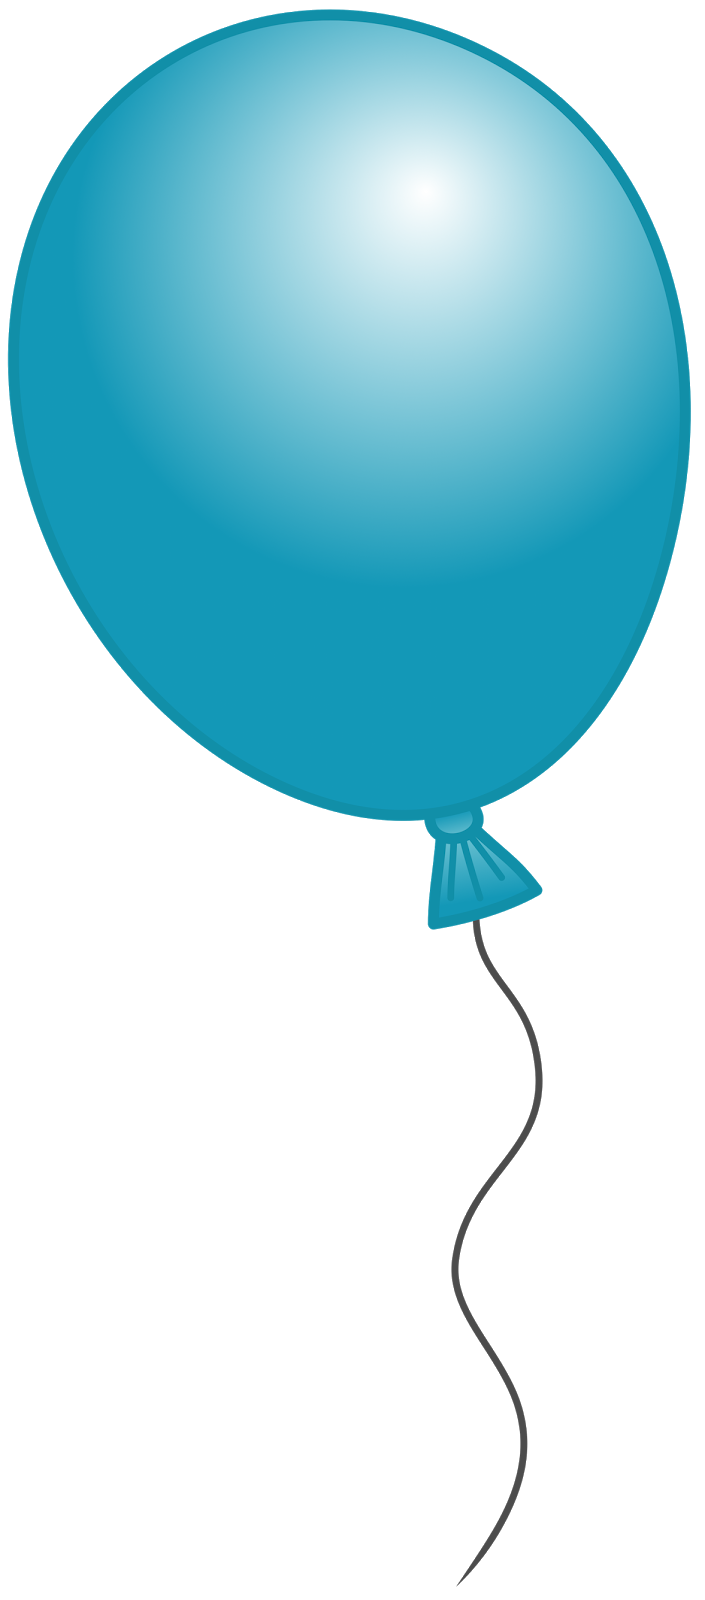 Balloons clipart. One balloon png transparent